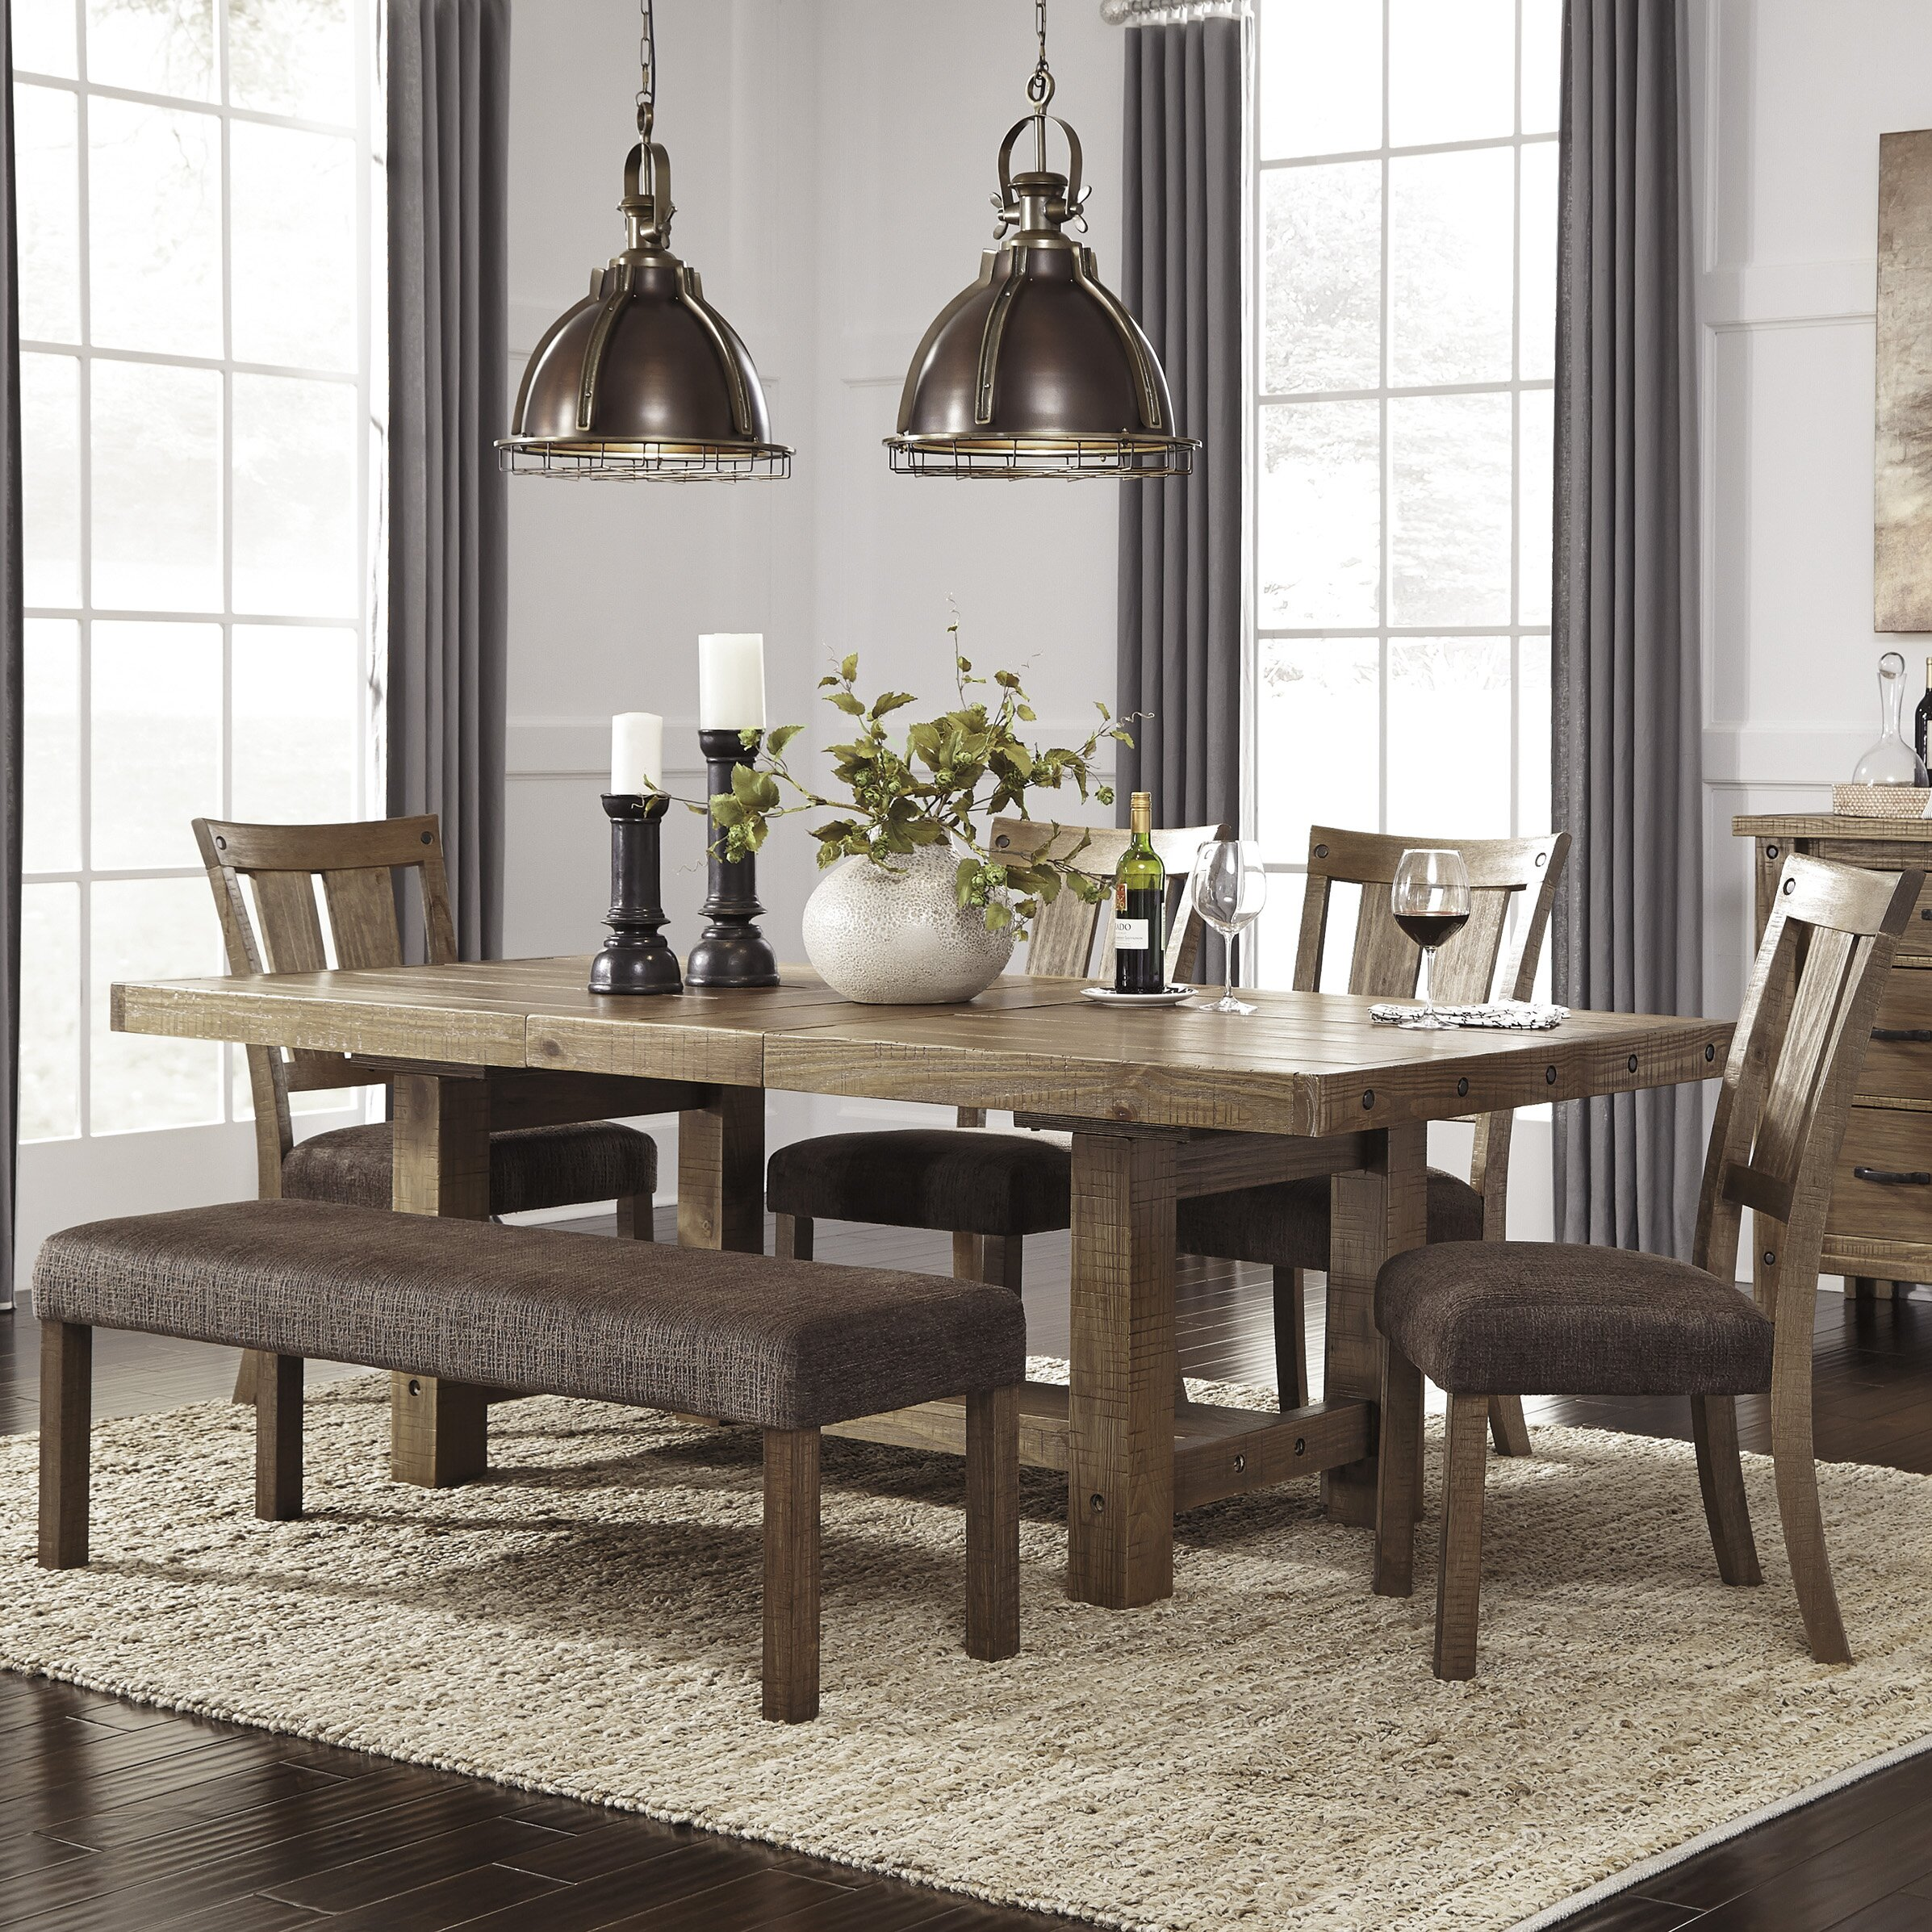 Signature design by ashley 9 piece dining set reviews for Designer dinette sets